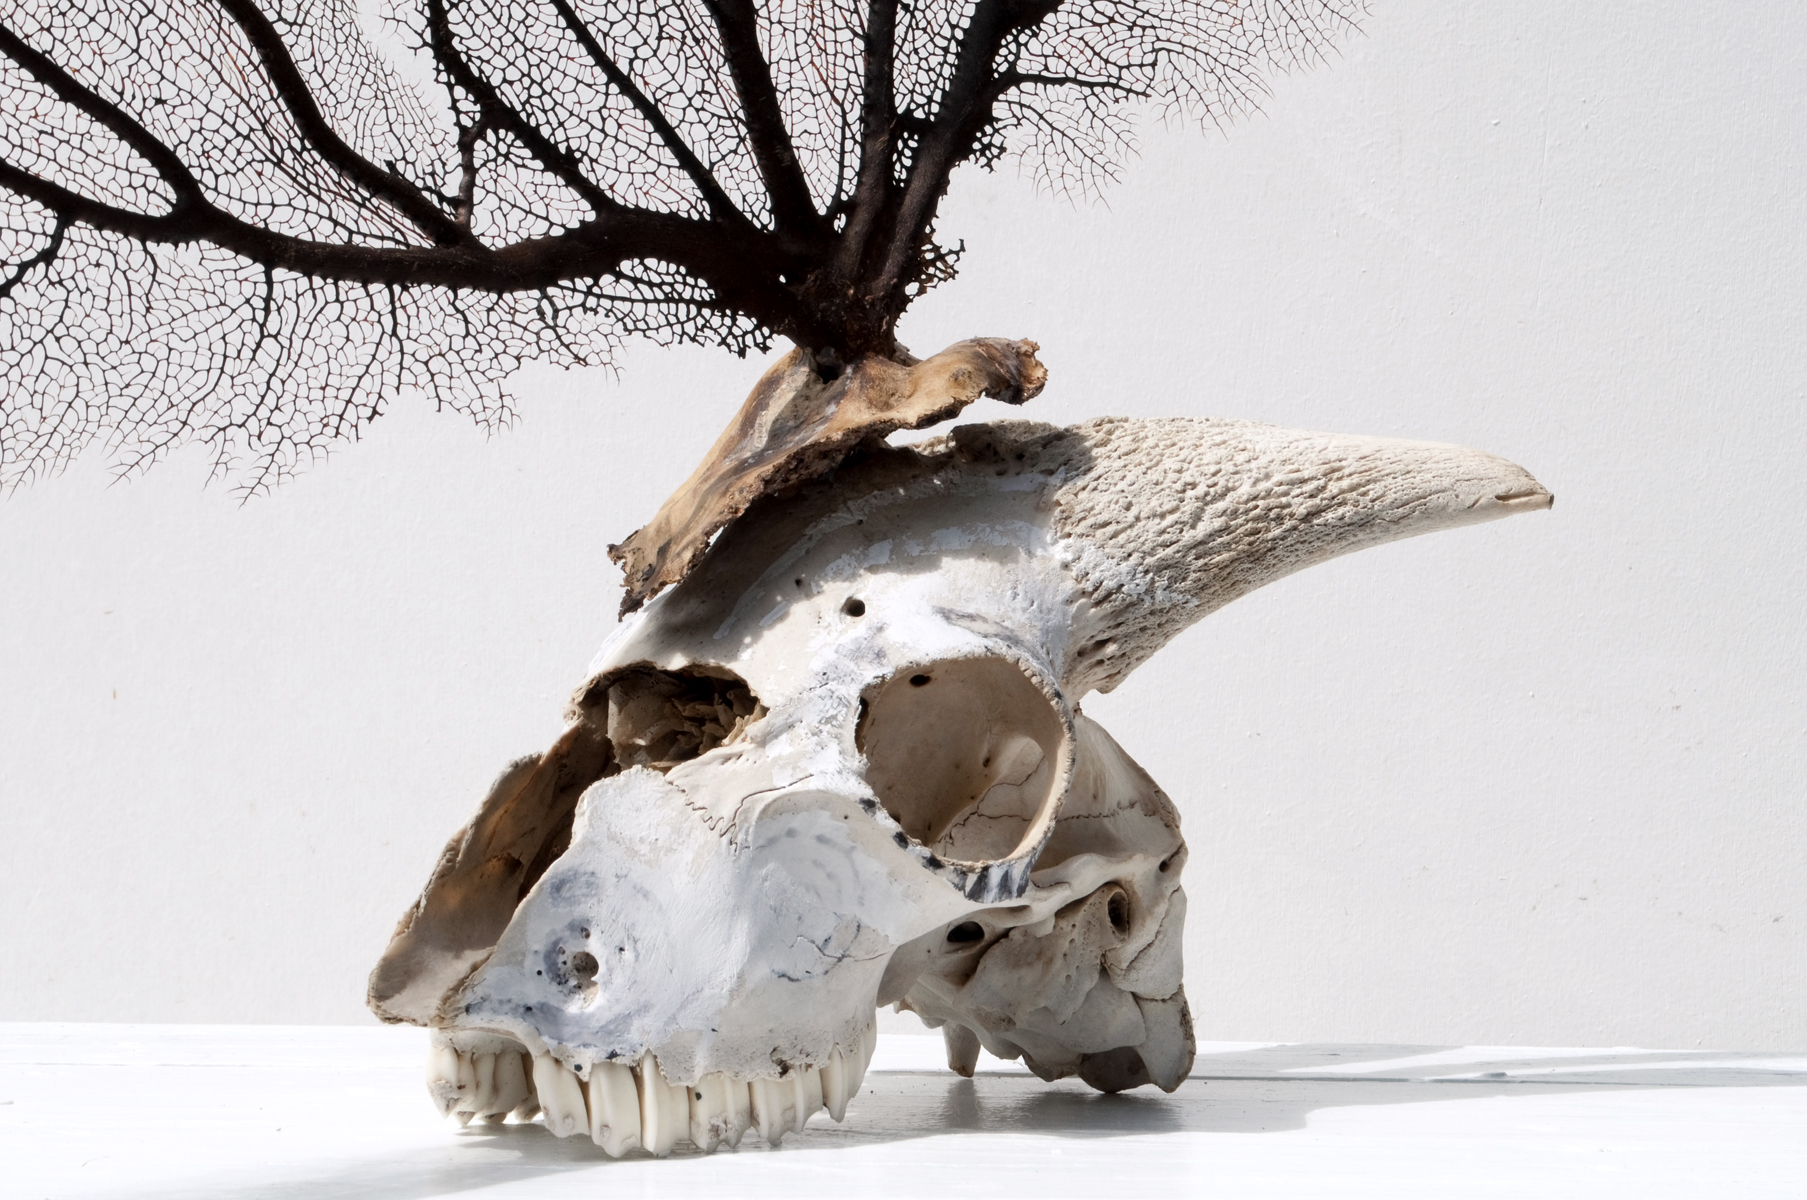 Terrae Incognita 2010 65 x 68 x 20 cm / 25.6 x 26.8 x 7.9 inches Mixed Media / goat Skull